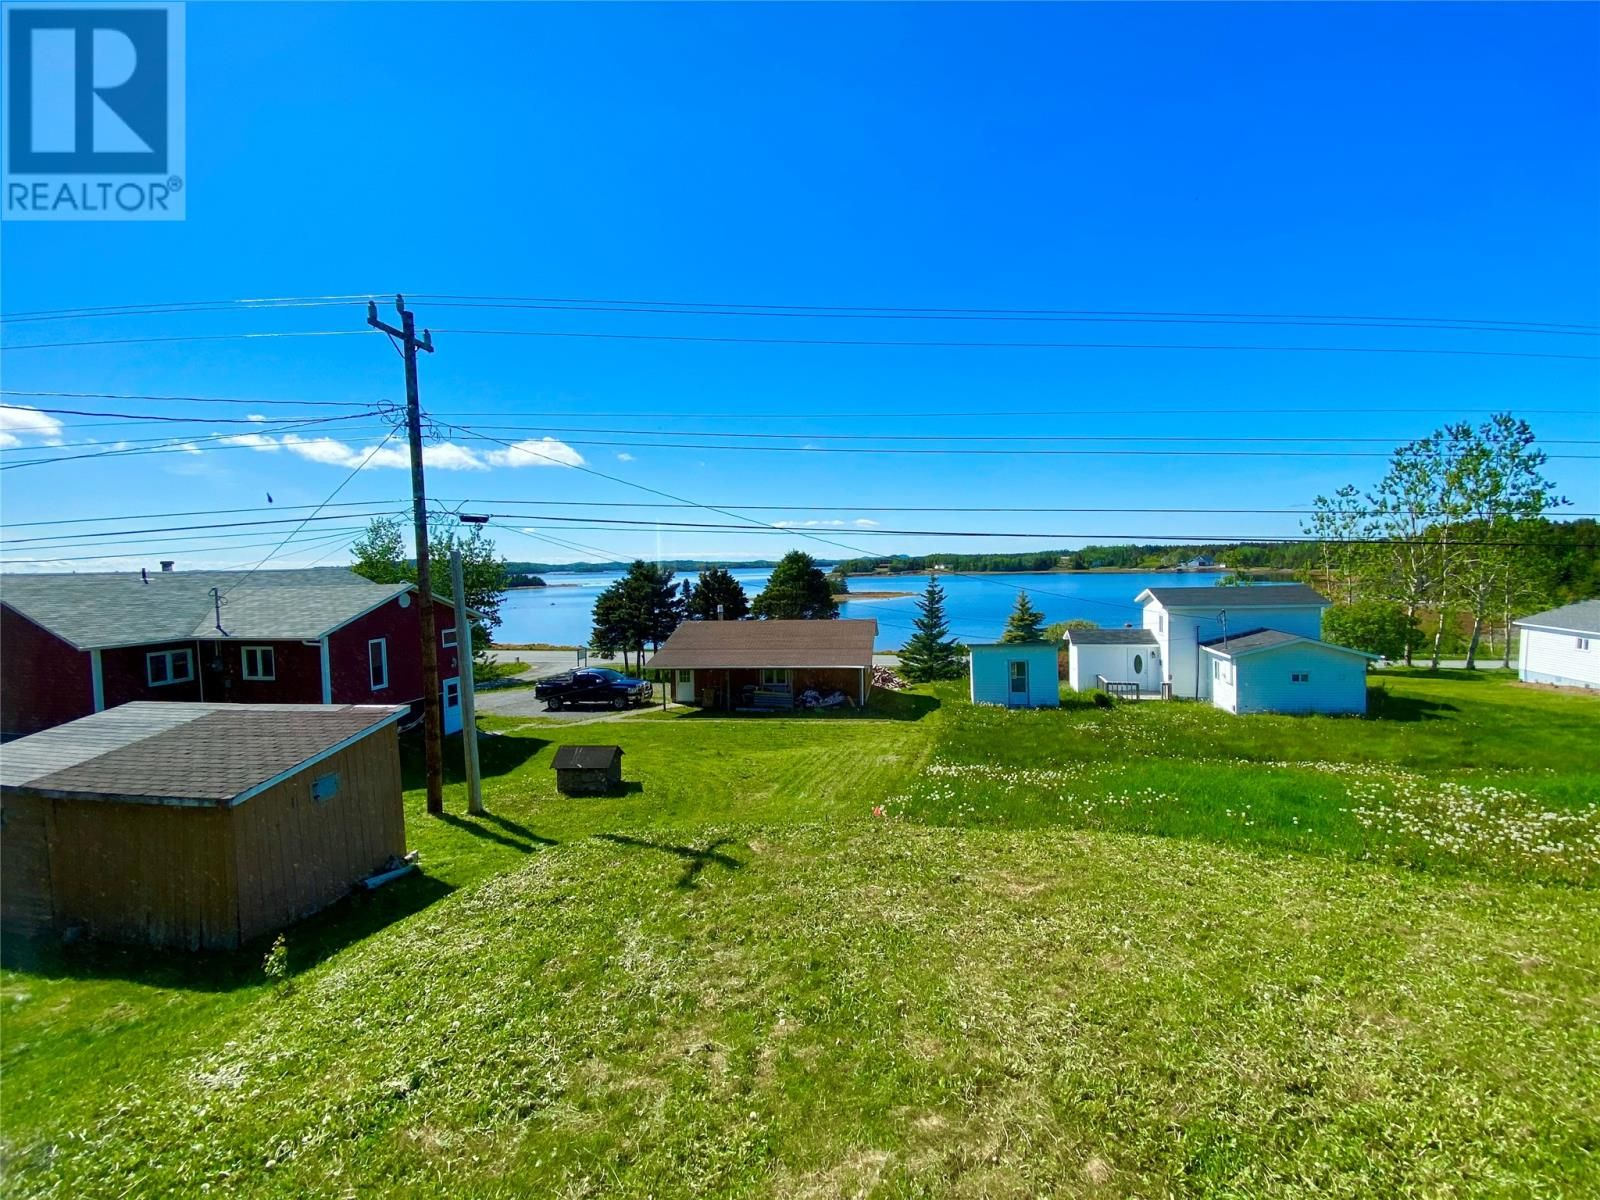 Main Photo: 58 Main Street in Boyd's Cove: House for sale : MLS®# 1232188